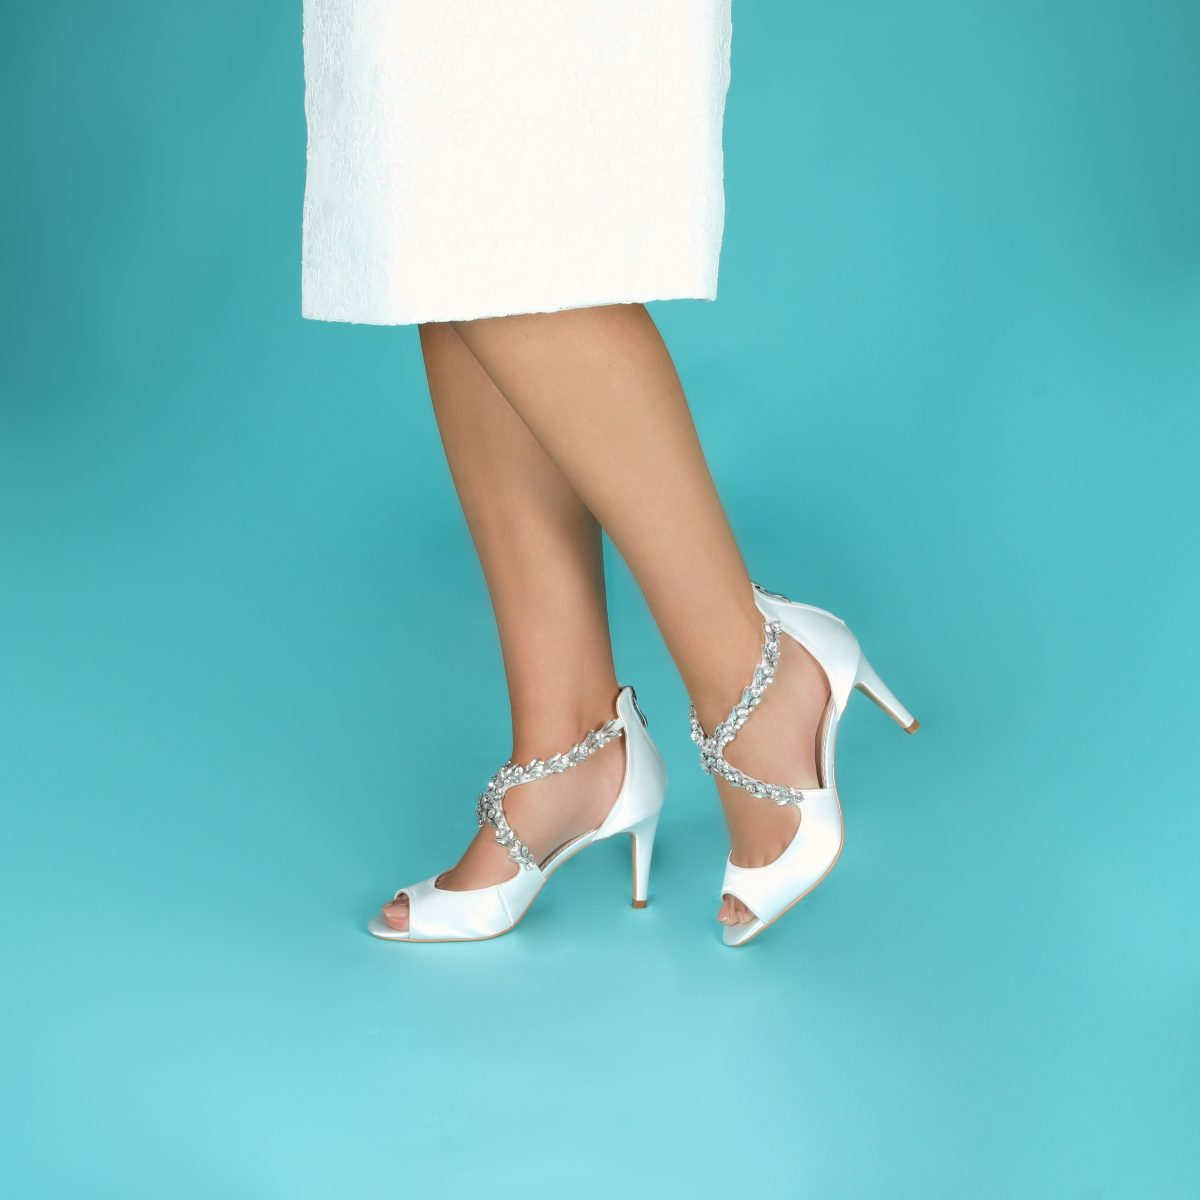 Perfect Bridal Katelyn Shoes - Ivory Satin 3